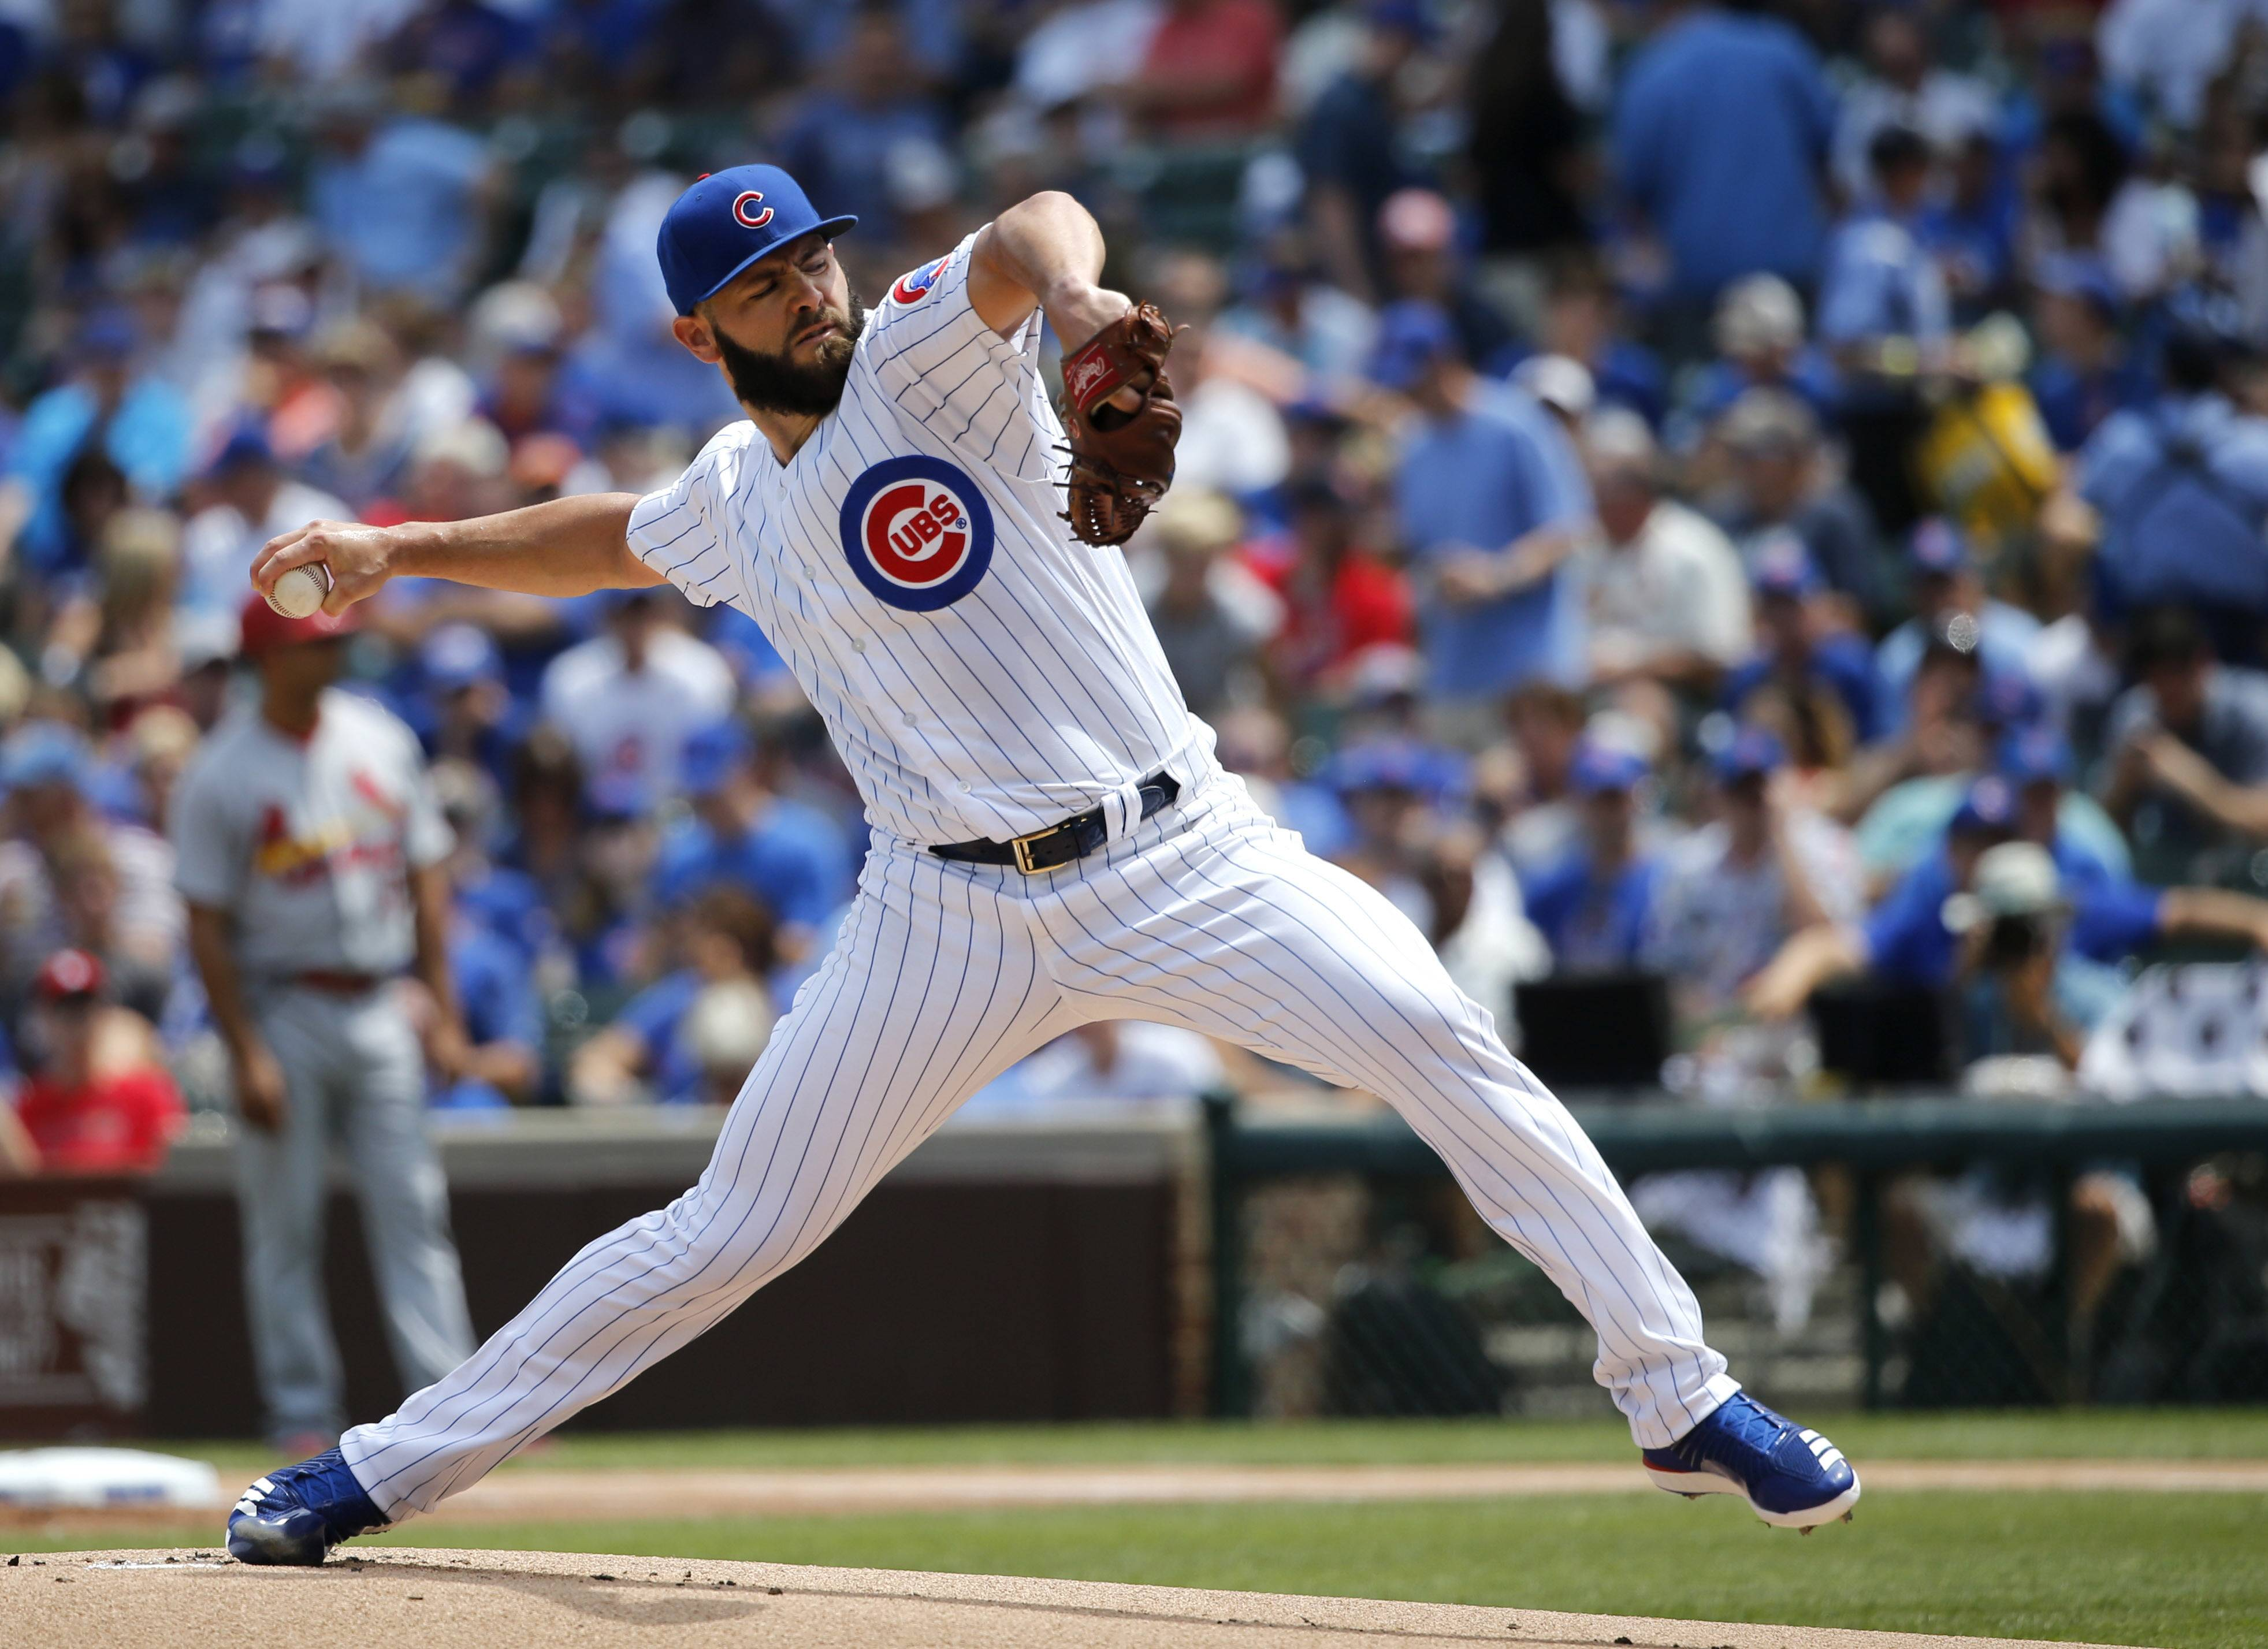 Chicago Cubs starting pitcher Jake Arrieta delivers during the first inning of a baseball game against the St. Louis Cardinals Friday, July 21, 2017, in Chicago. A huge part of the Cubs' rebuild was getting Arrieta and Pedro Strop in a trade with the Baltimore Orioles. (AP Photo/Charles Rex Arbogast)